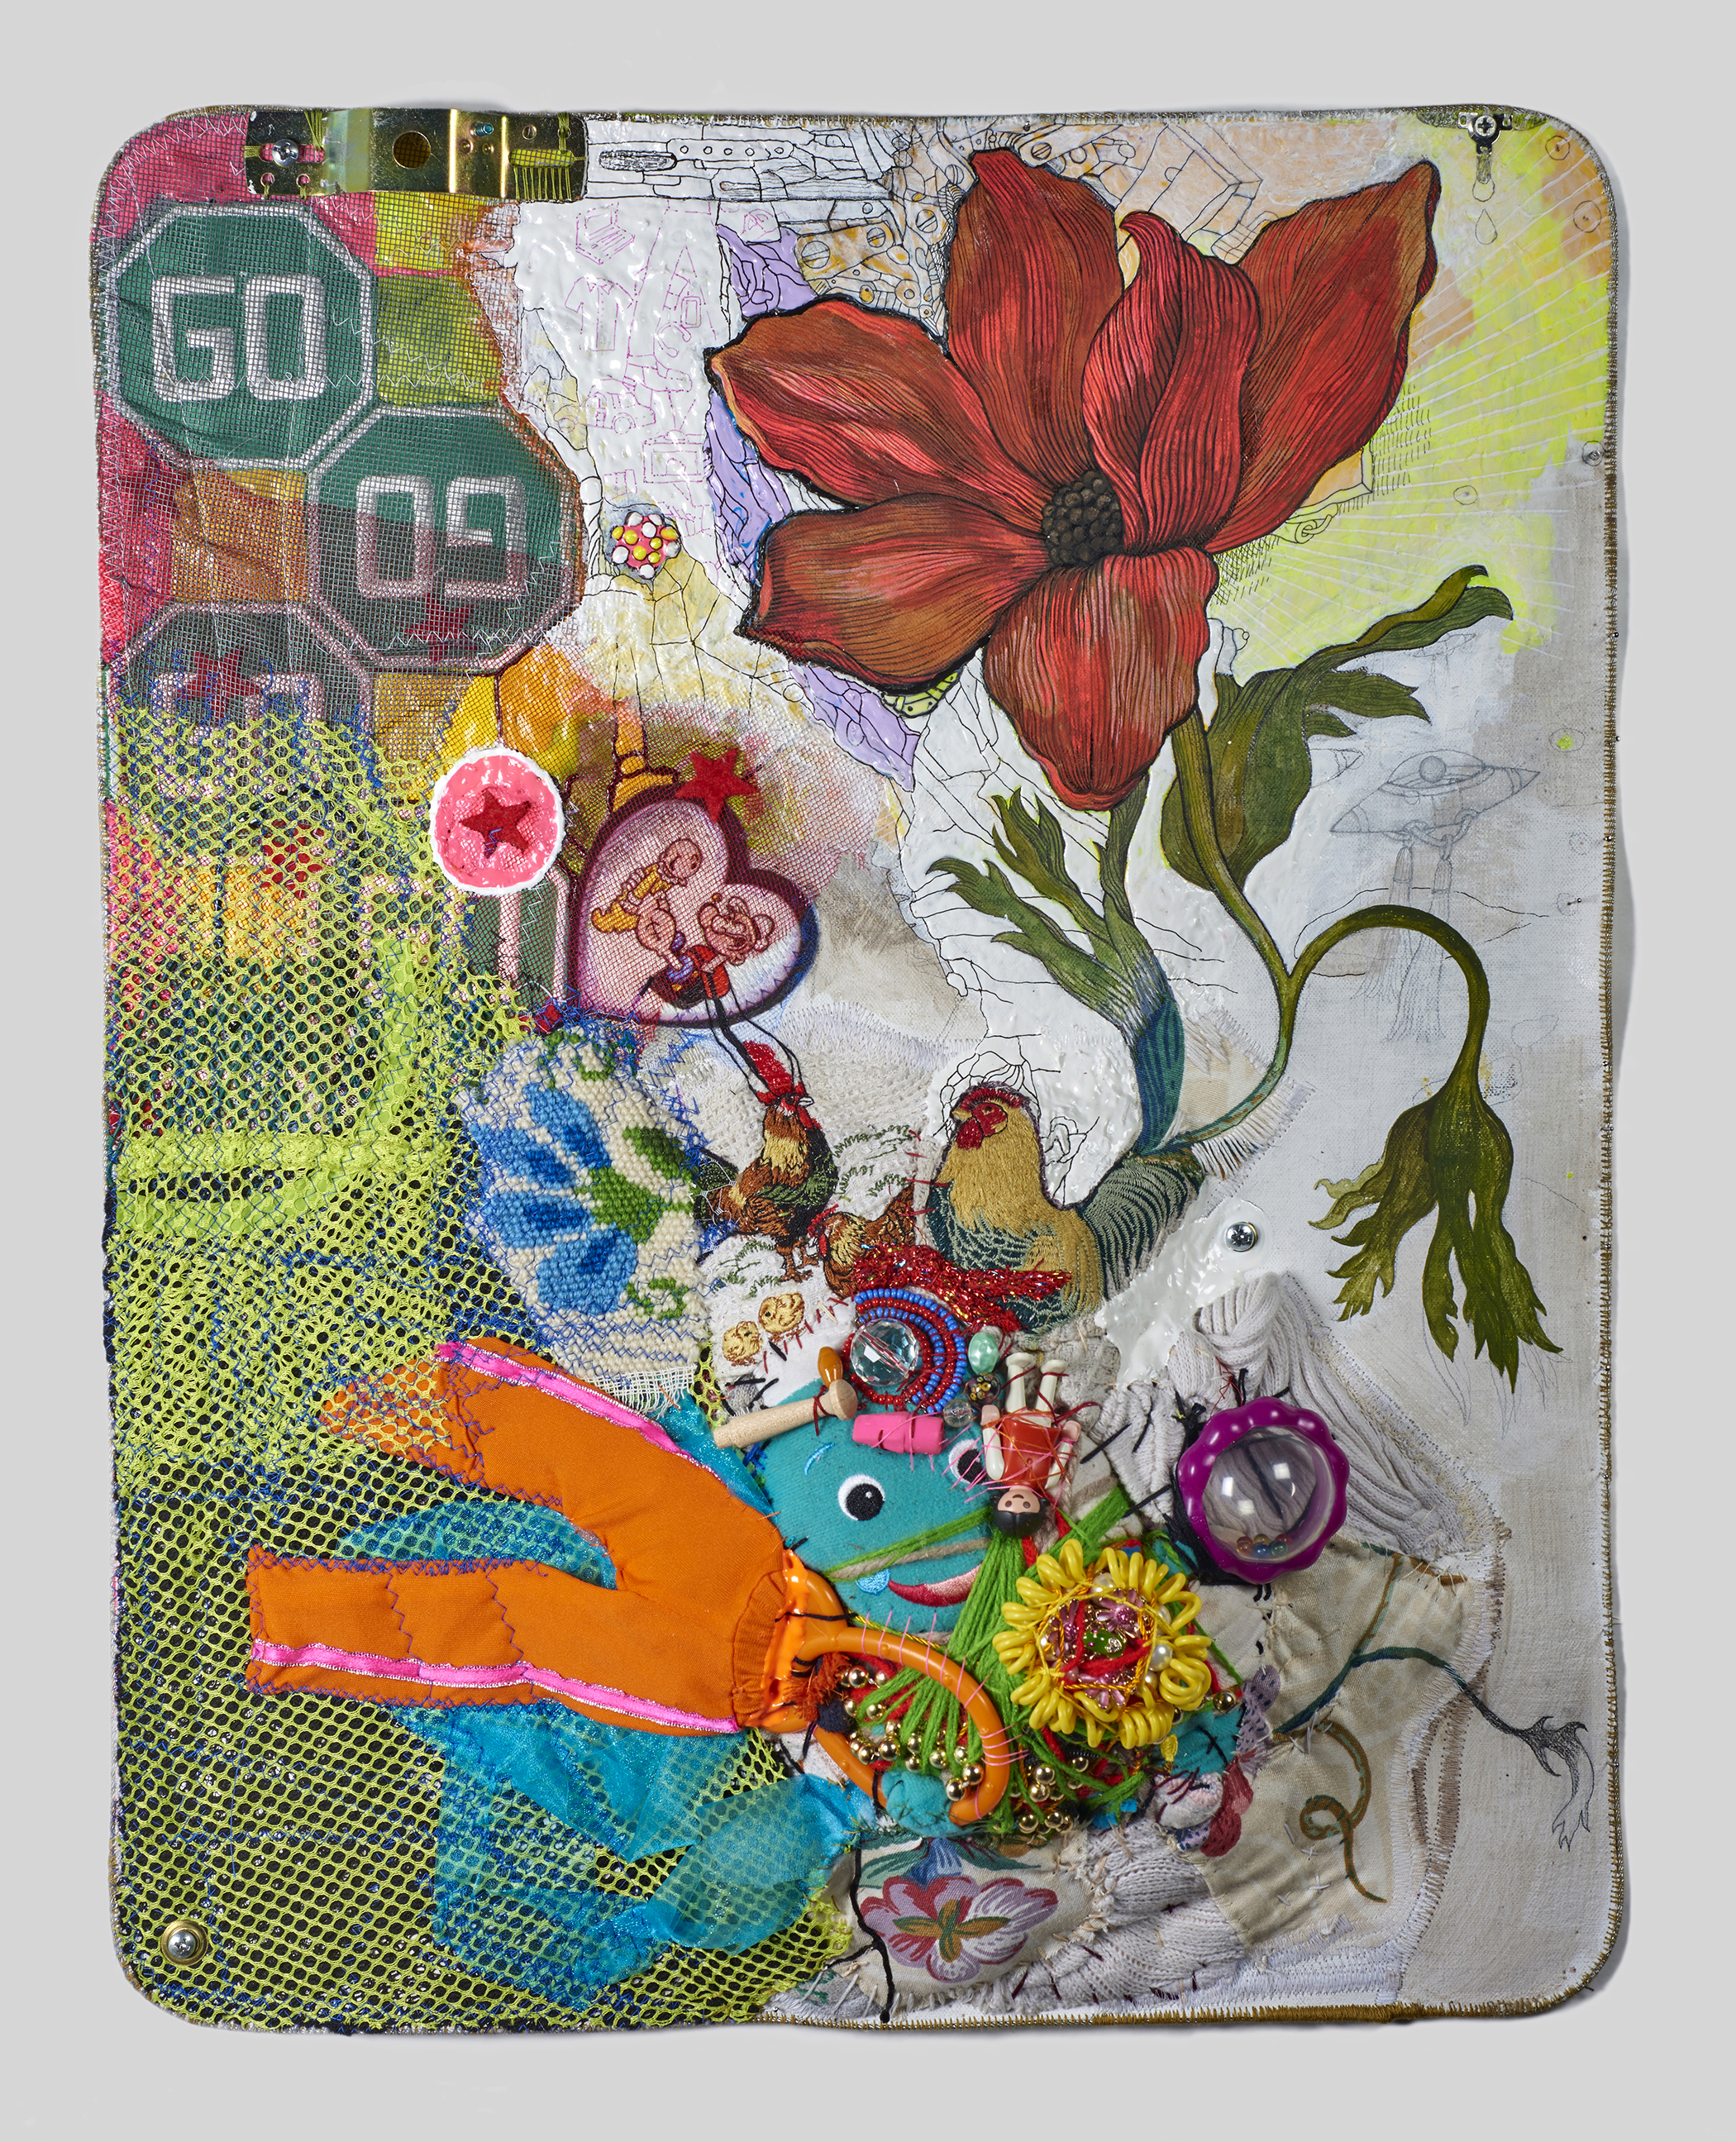 """Hybrid :After Nature by Jedediah Purdy    2017,    22 ½"""" x 17 ½"""" x 5"""", metal cable, pencil, gouache, acrylic, Micron pen, thread, found objects & grommets on canvas"""